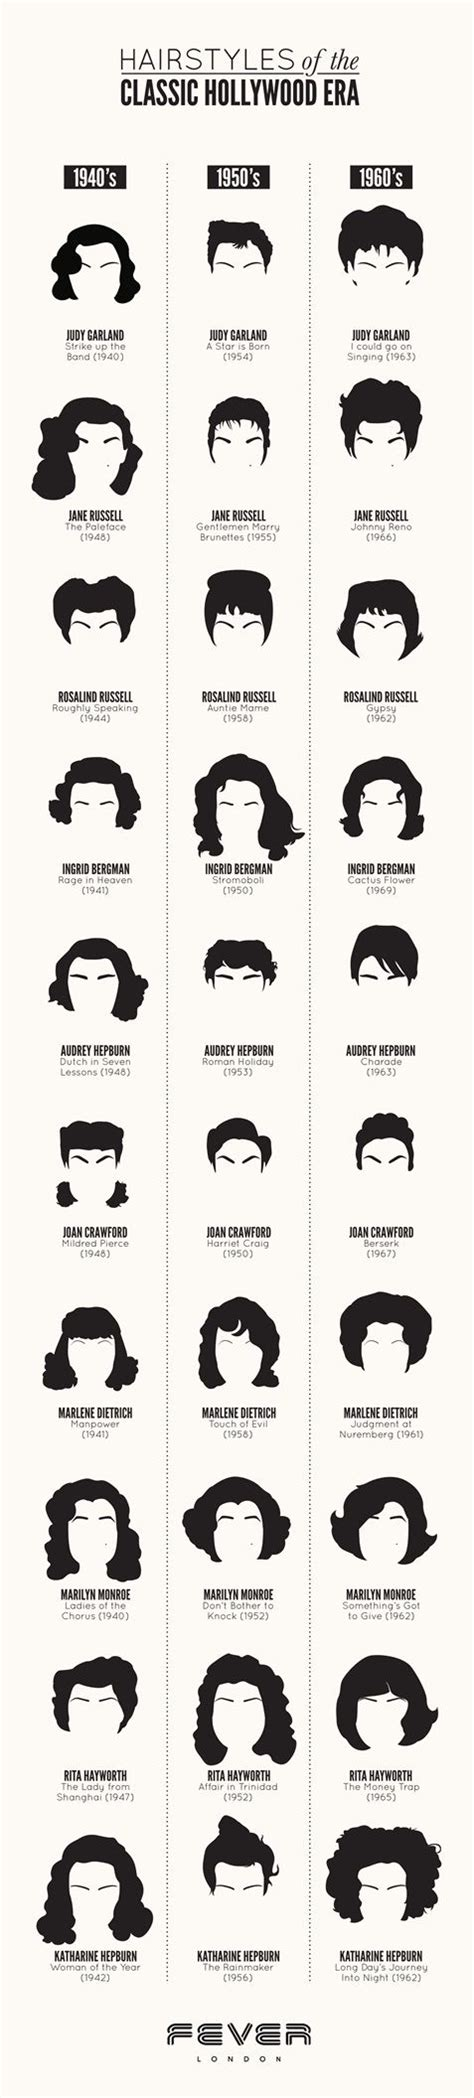 history of hairstyles chart 150 best images about old hollywood hair styles on